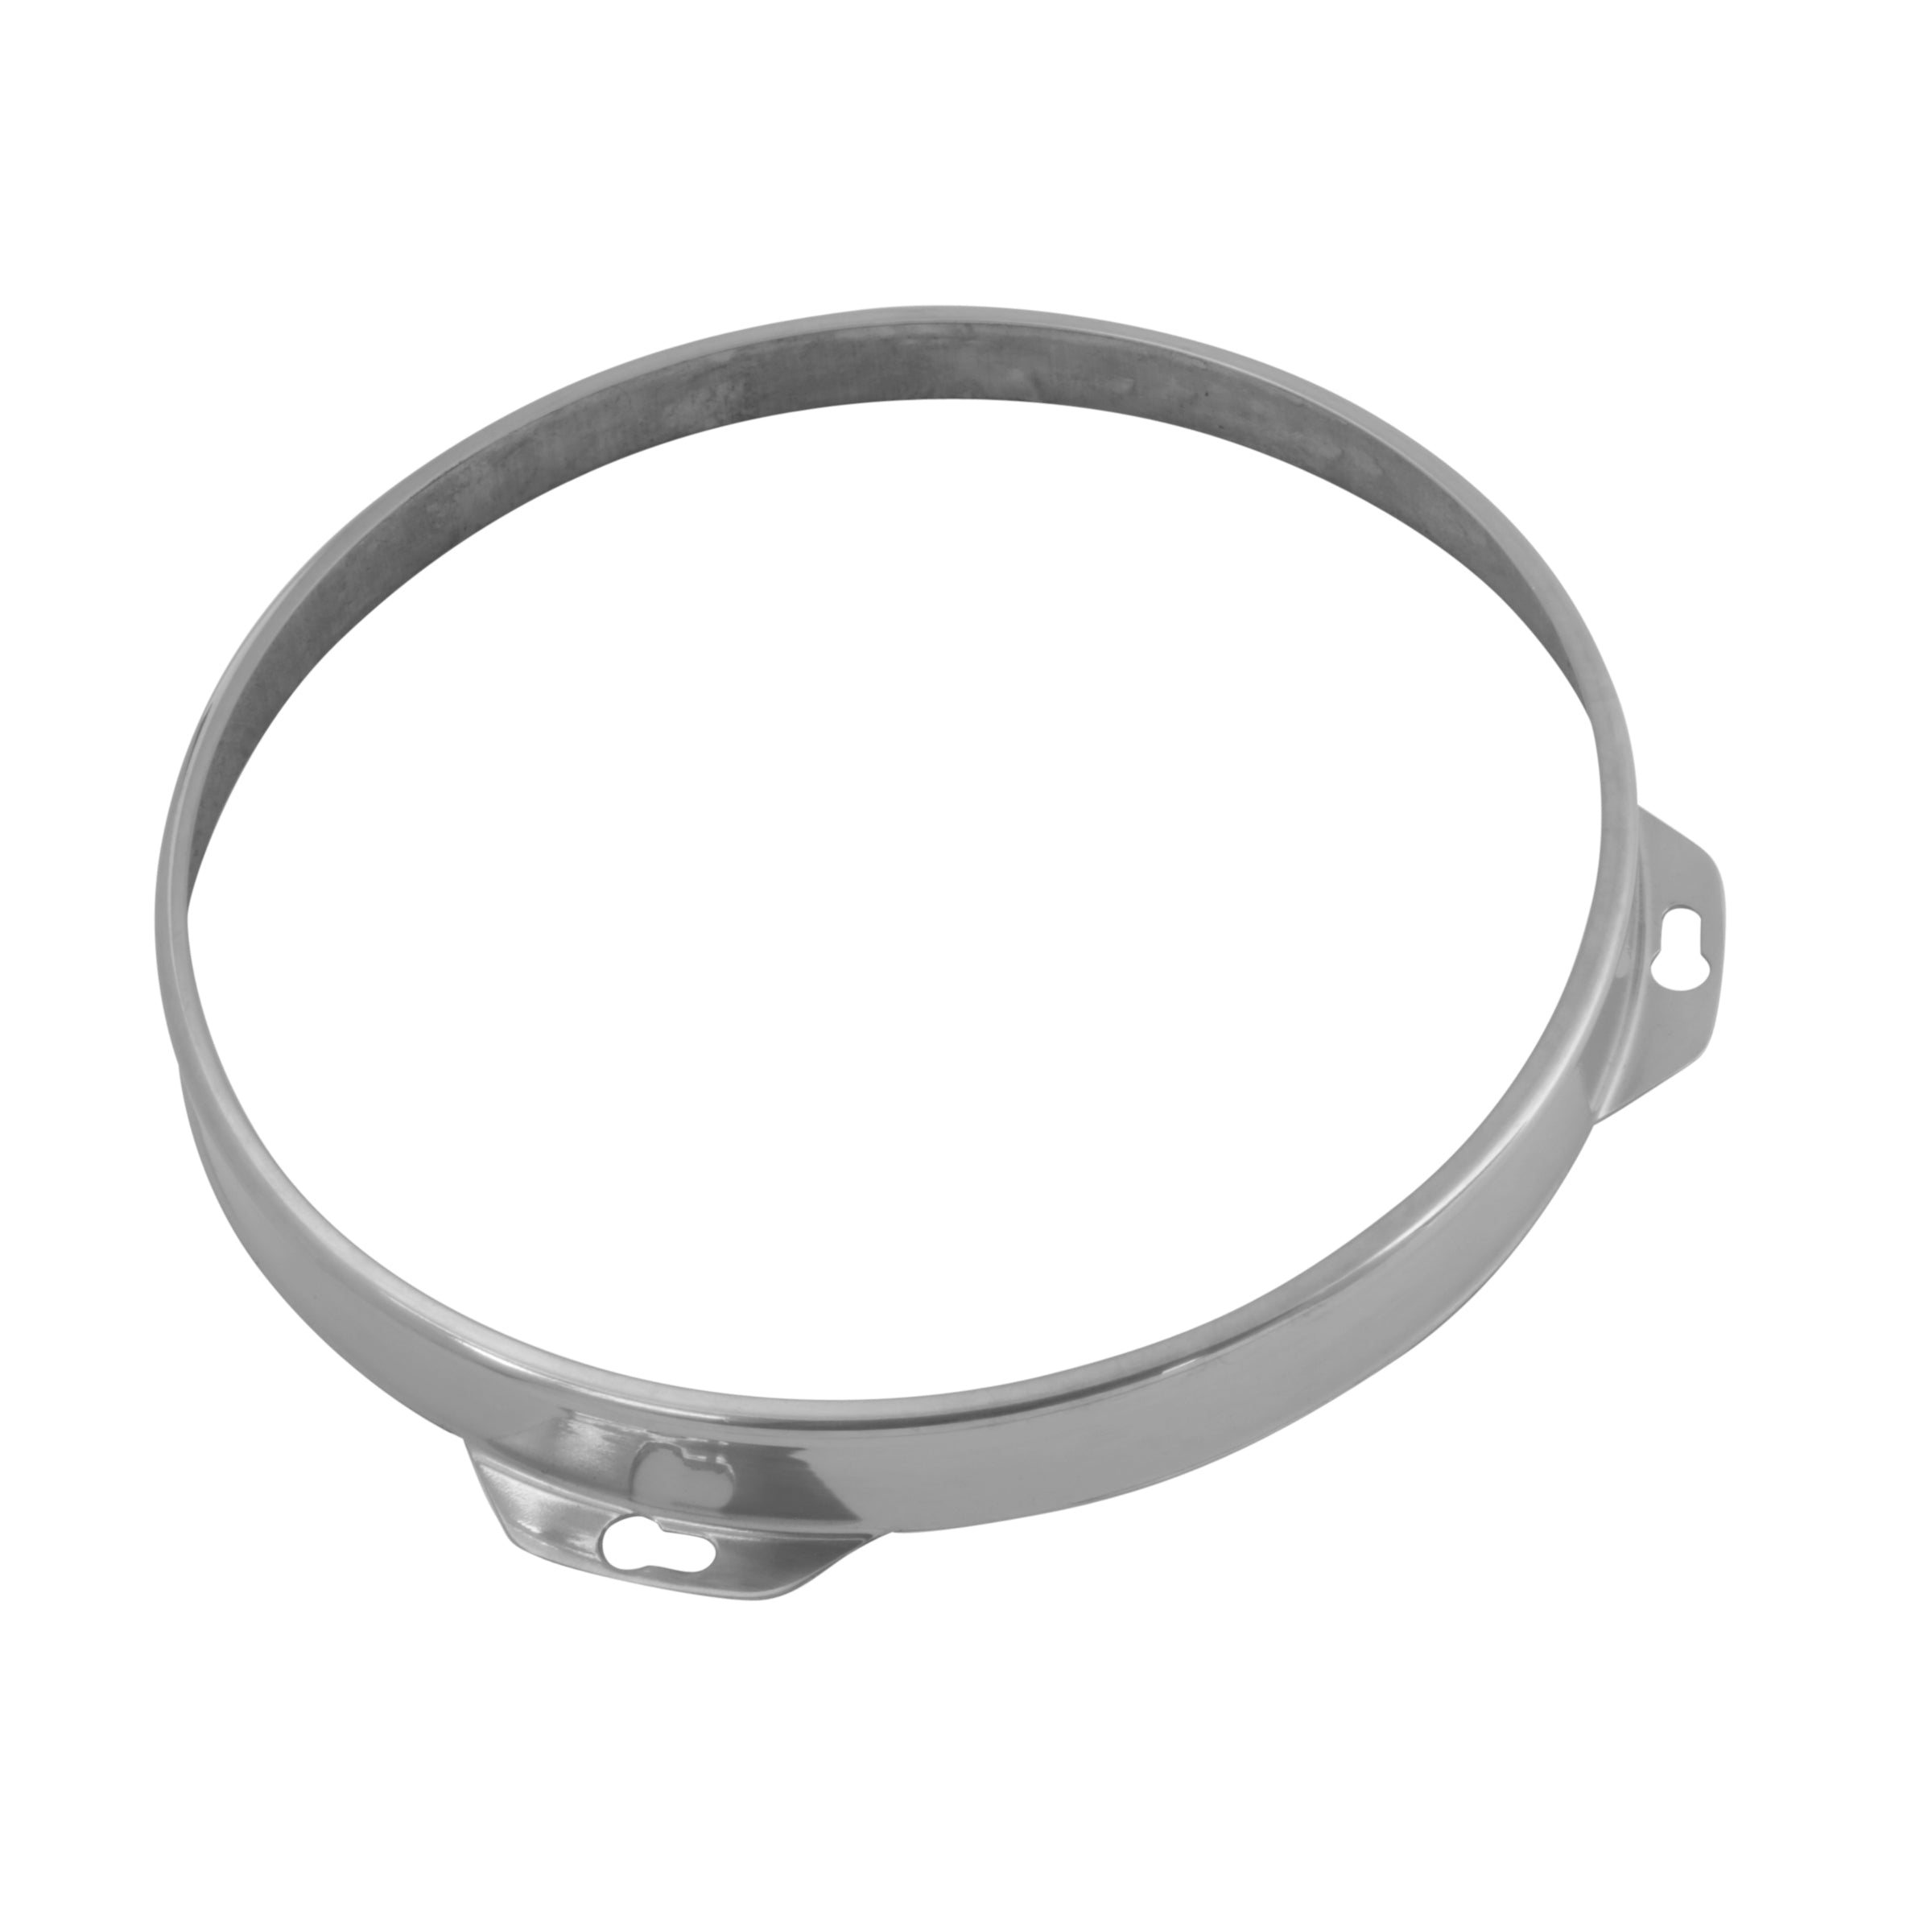 Sealed Beam Retainer Ring (Stainless Steel) • 1940-55 Ford